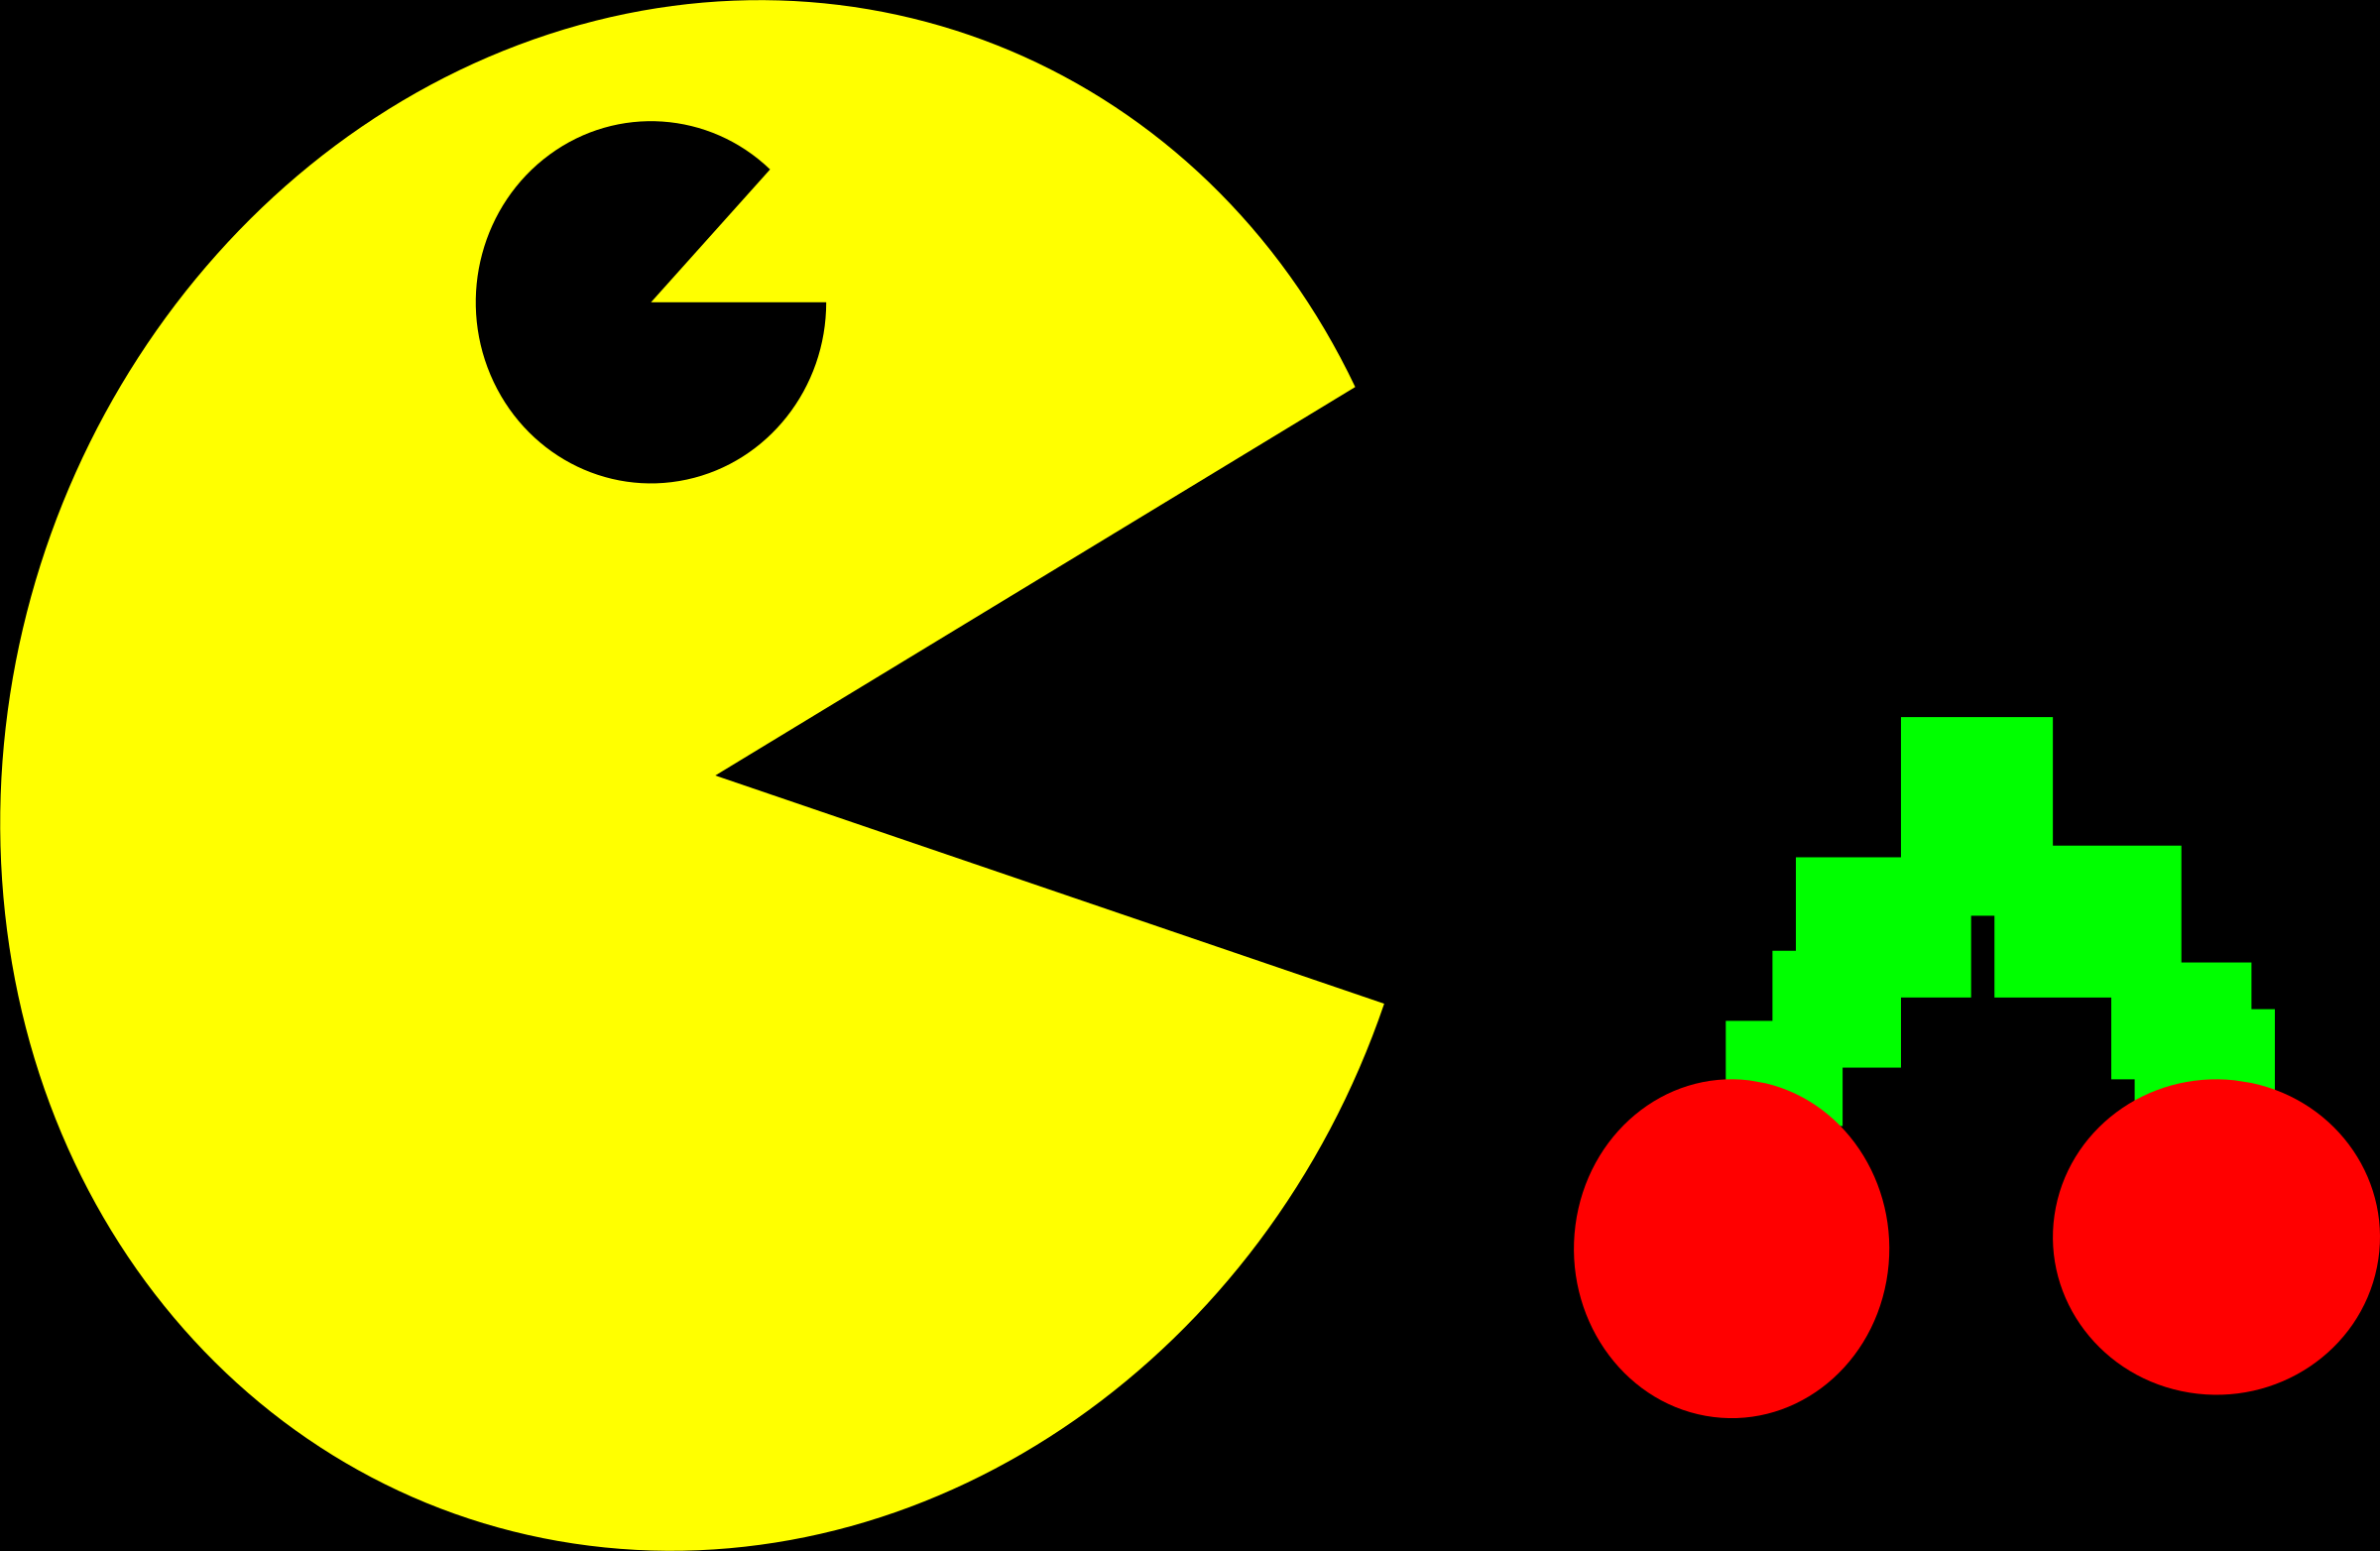 Pacman clipart vector. Pac man free download